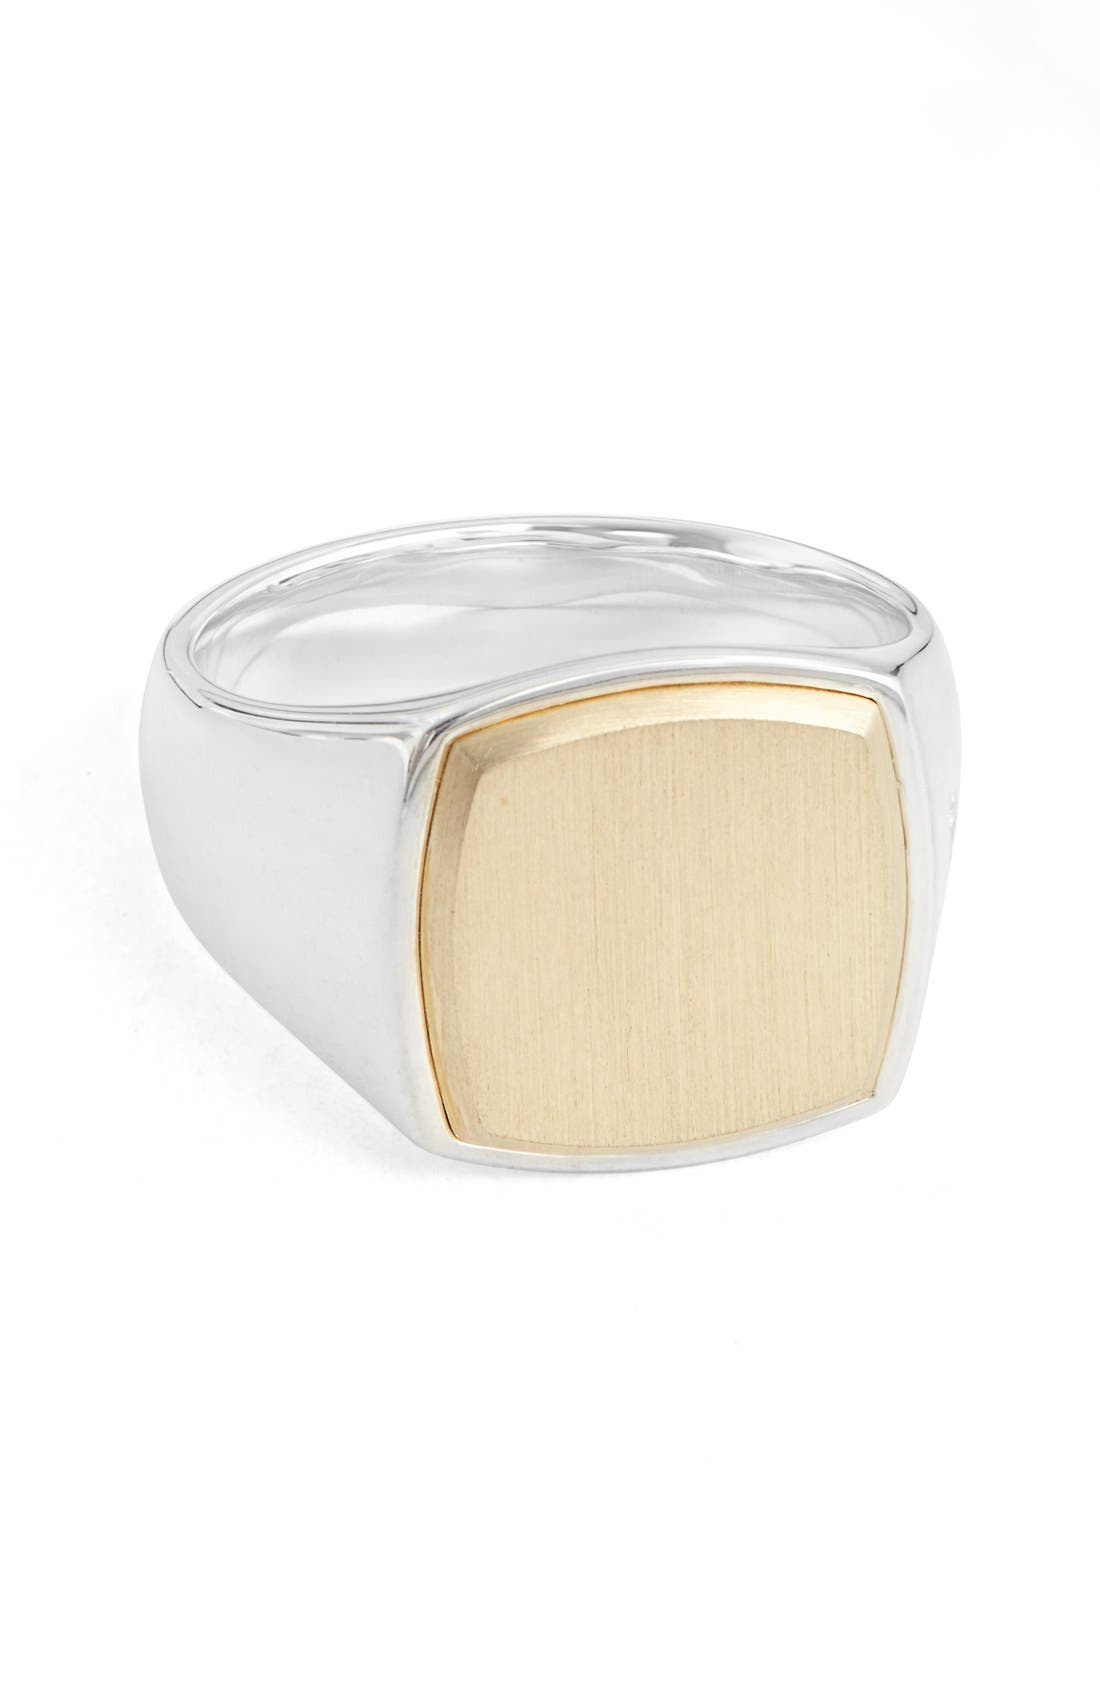 'Patriot Collection' Cushion Gold Top Signet Ring,                         Main,                         color, Silver / 9K